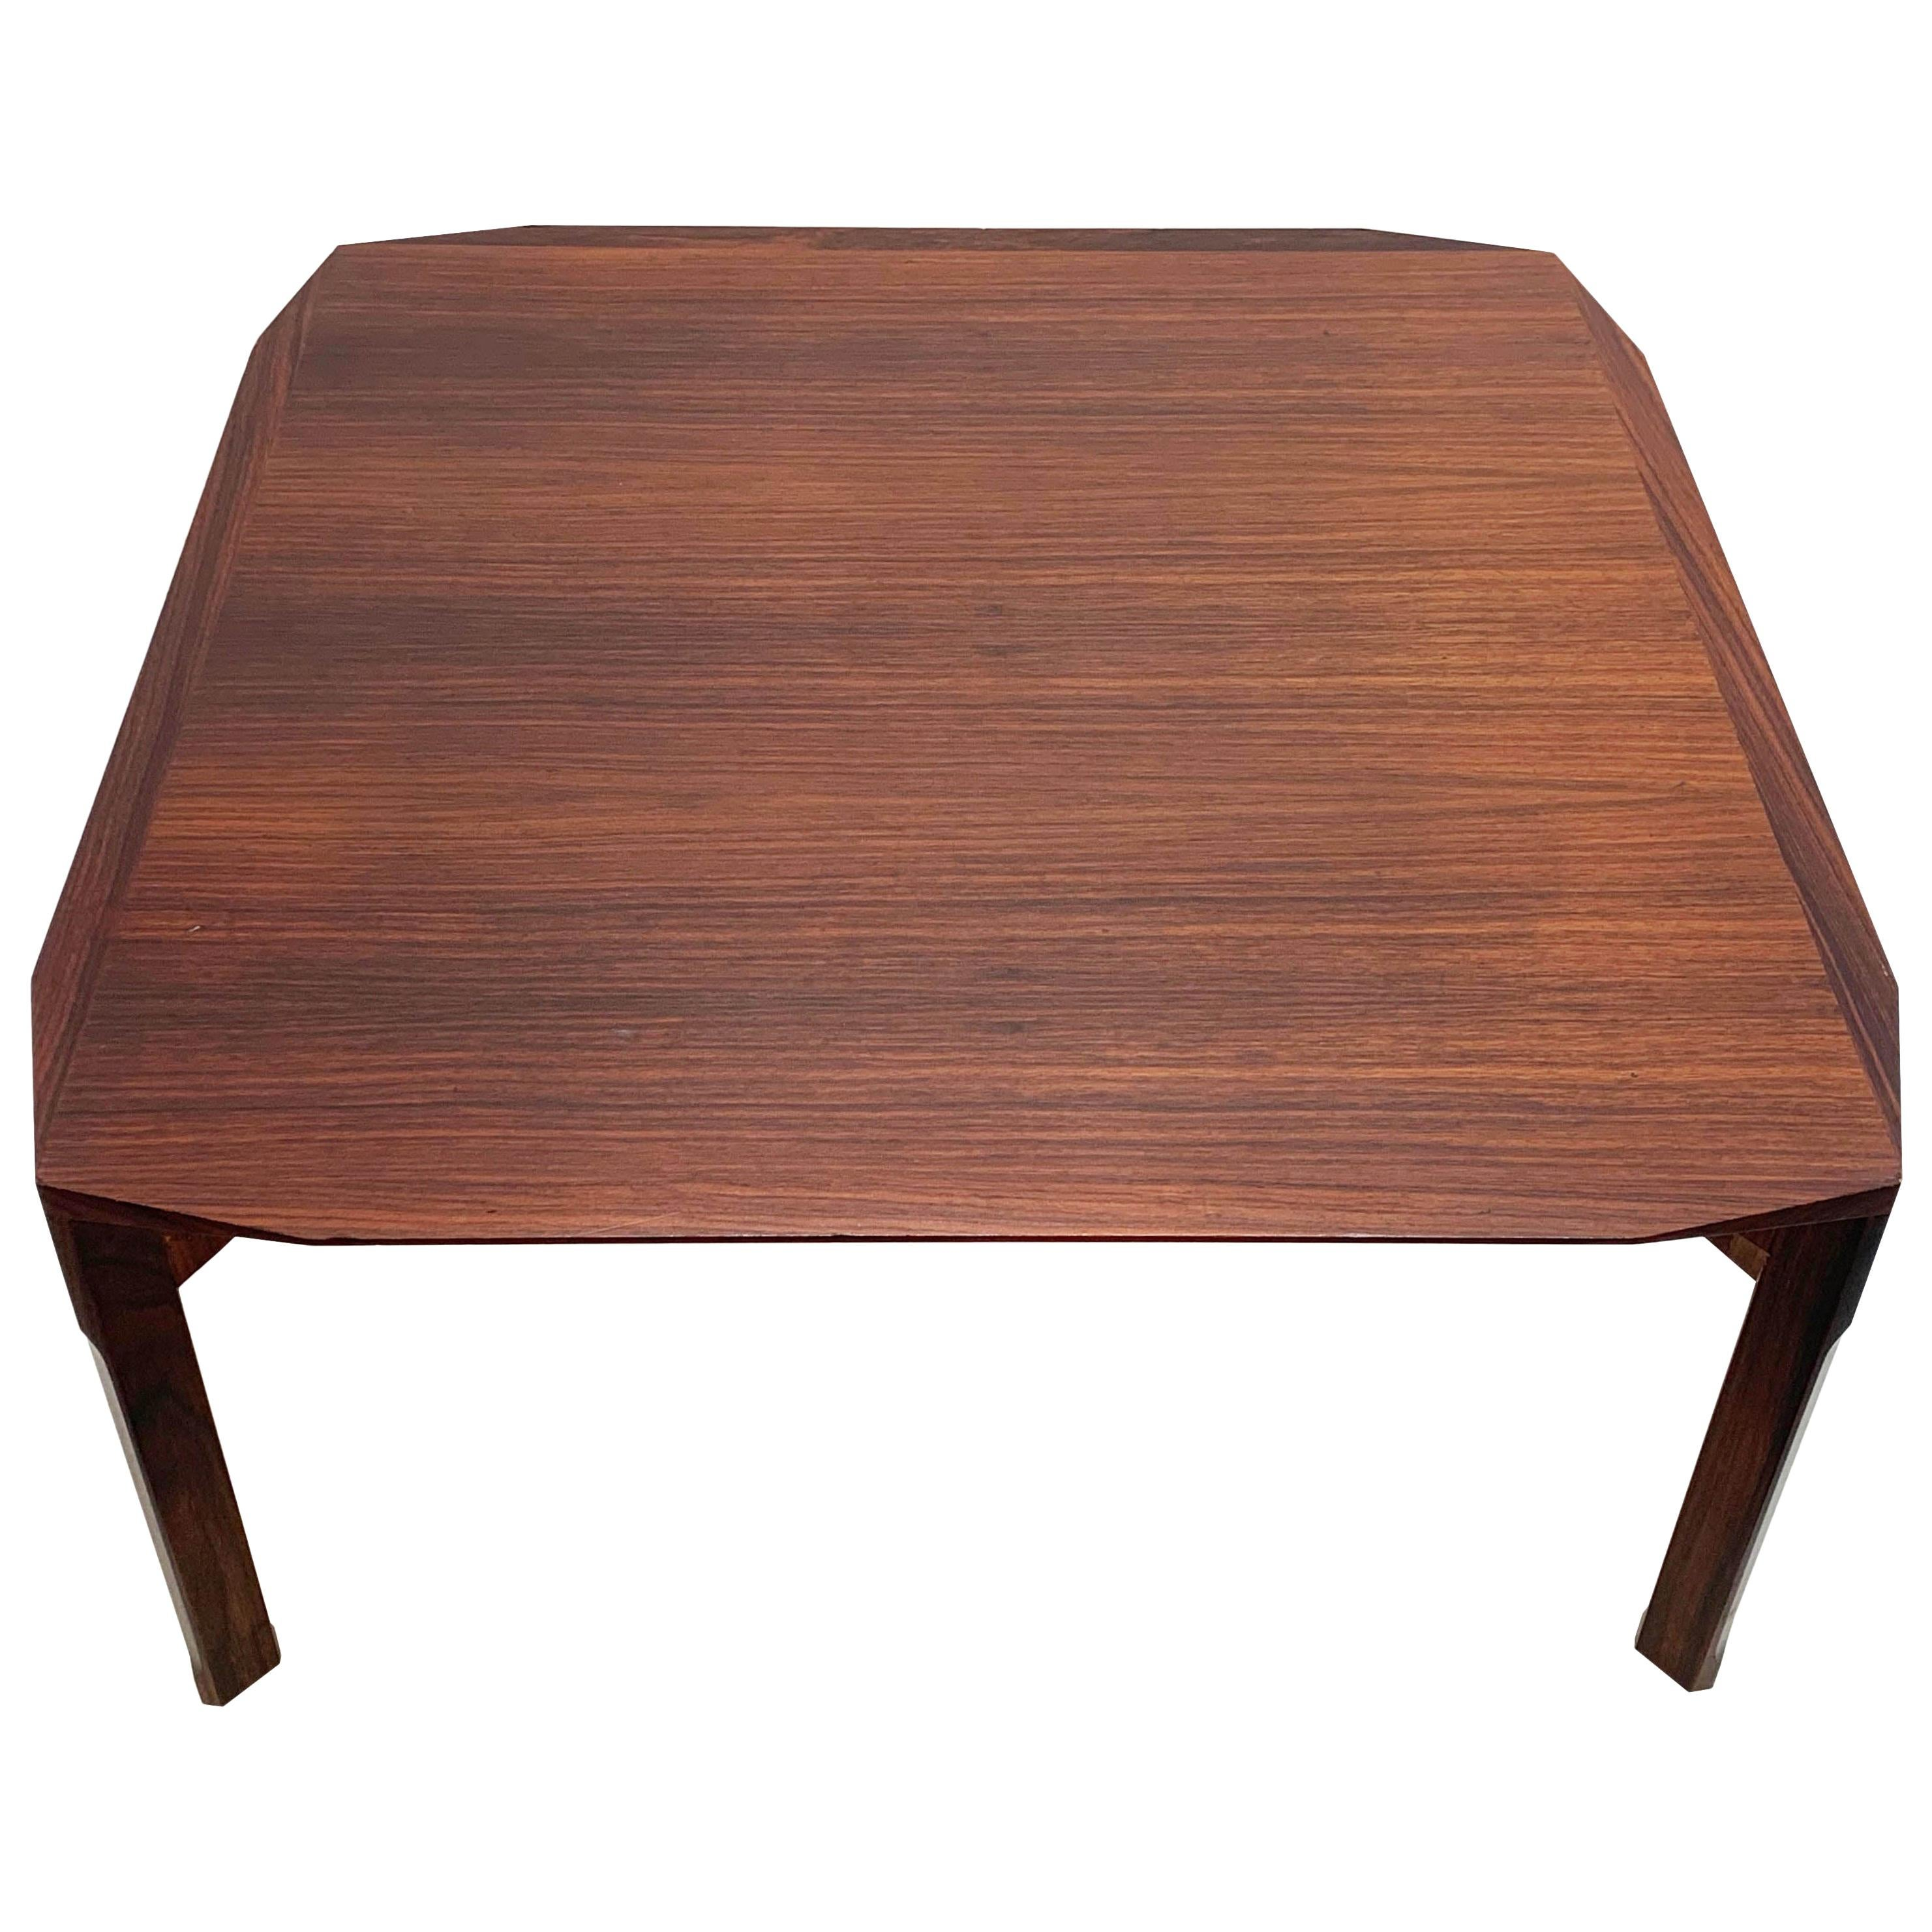 Mid-Century Modern Italian Square Wooden Coffee Table, 1960s